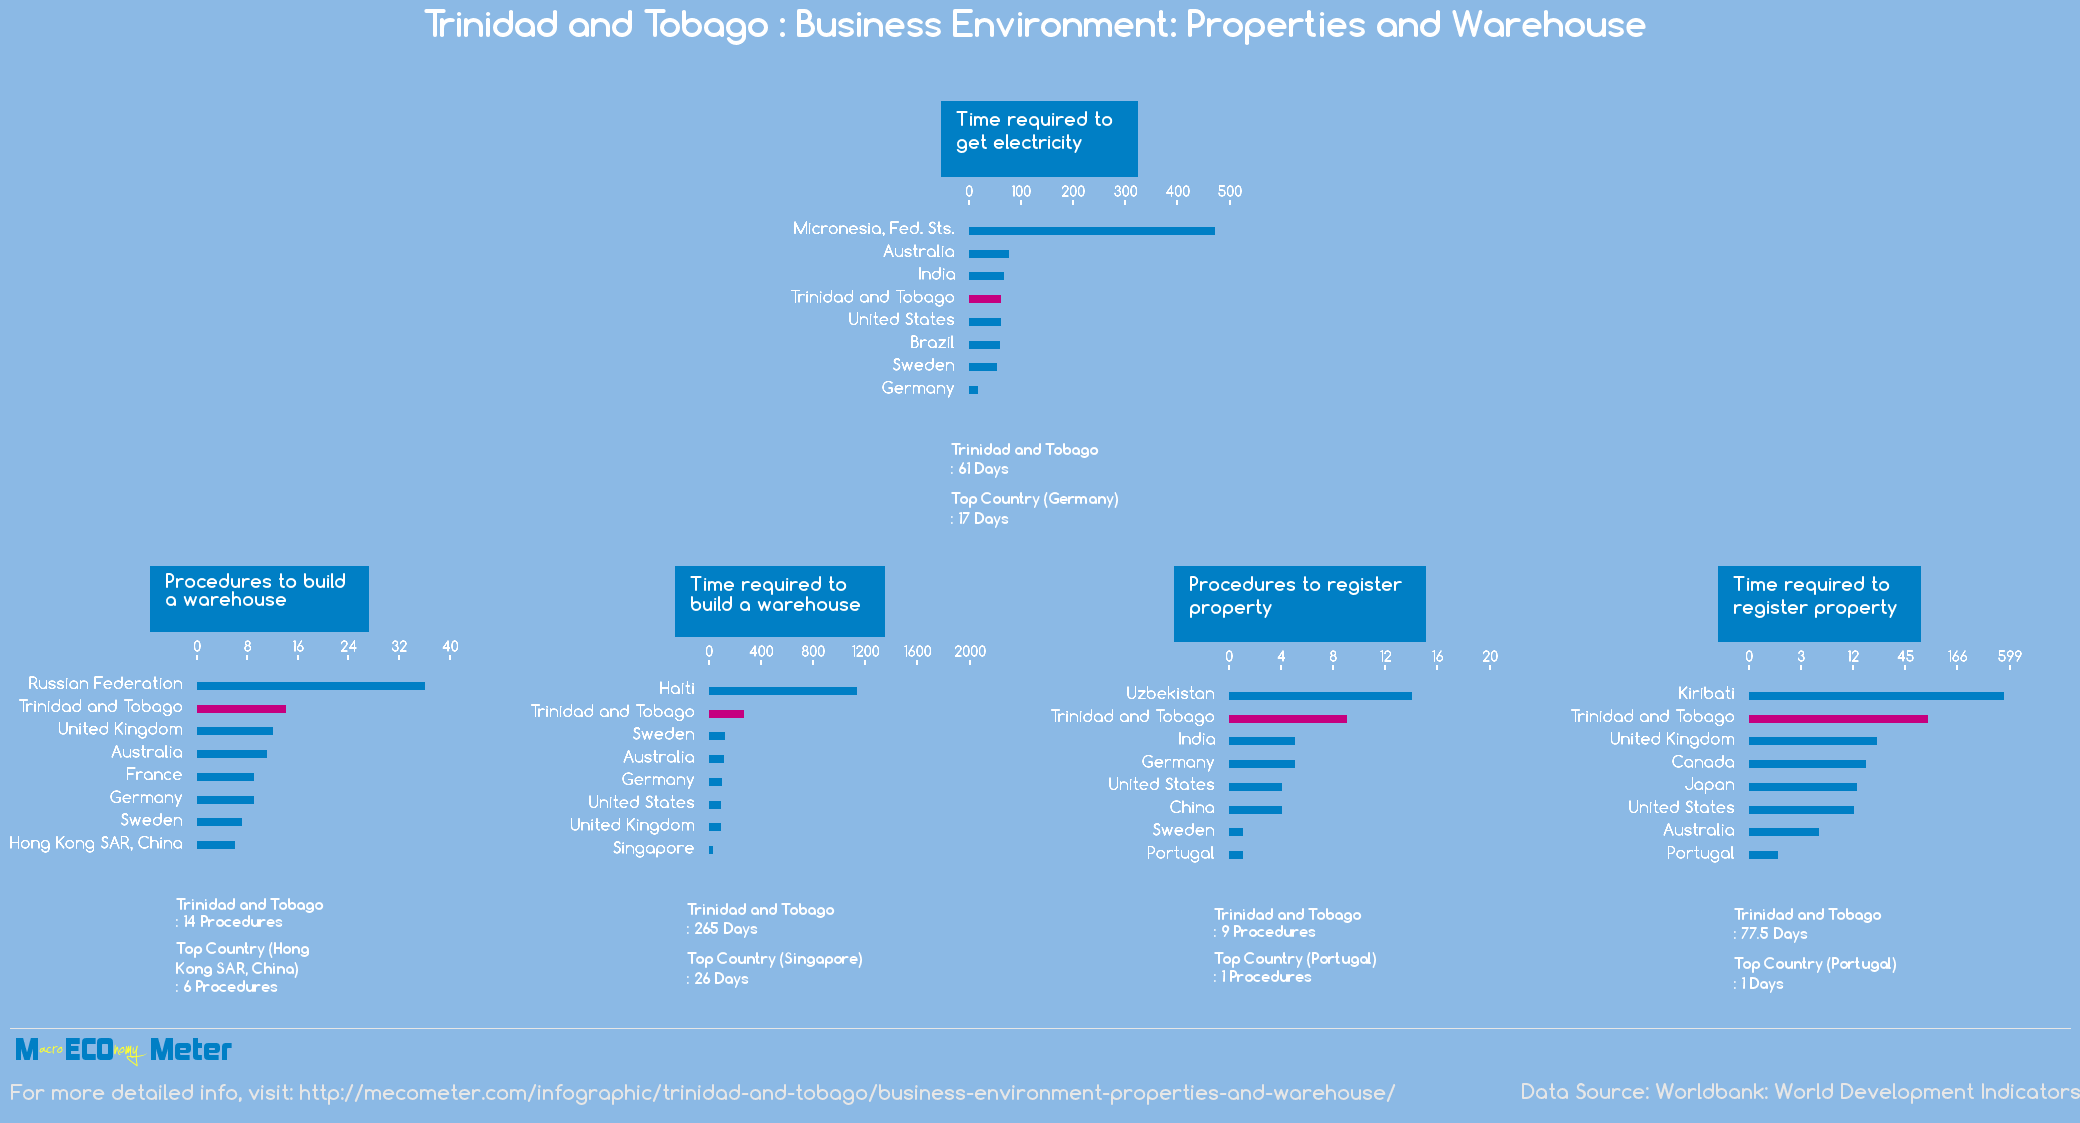 Trinidad and Tobago : Business Environment: Properties and Warehouse